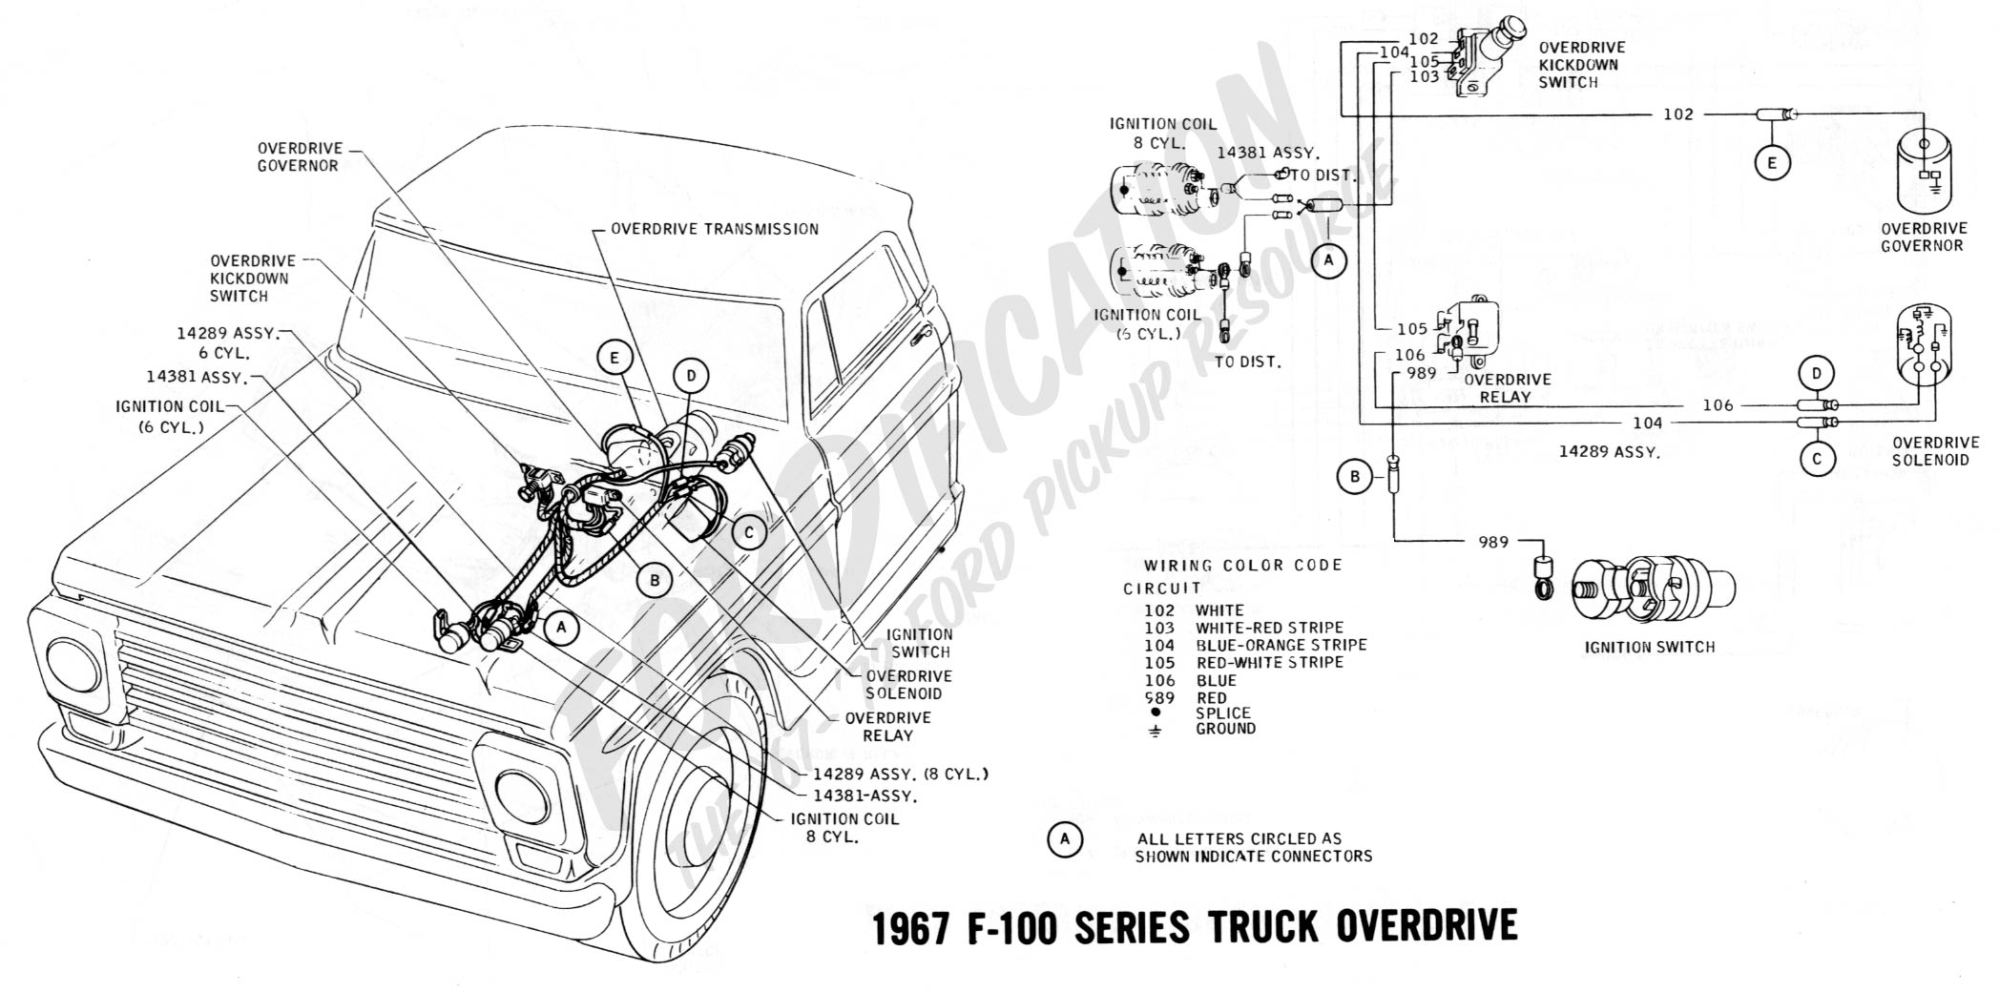 hight resolution of 1966 ford f100 dash wiring harness simple wiring diagrams 1957 1960 ford pick up 1960 ford truck dash wiring